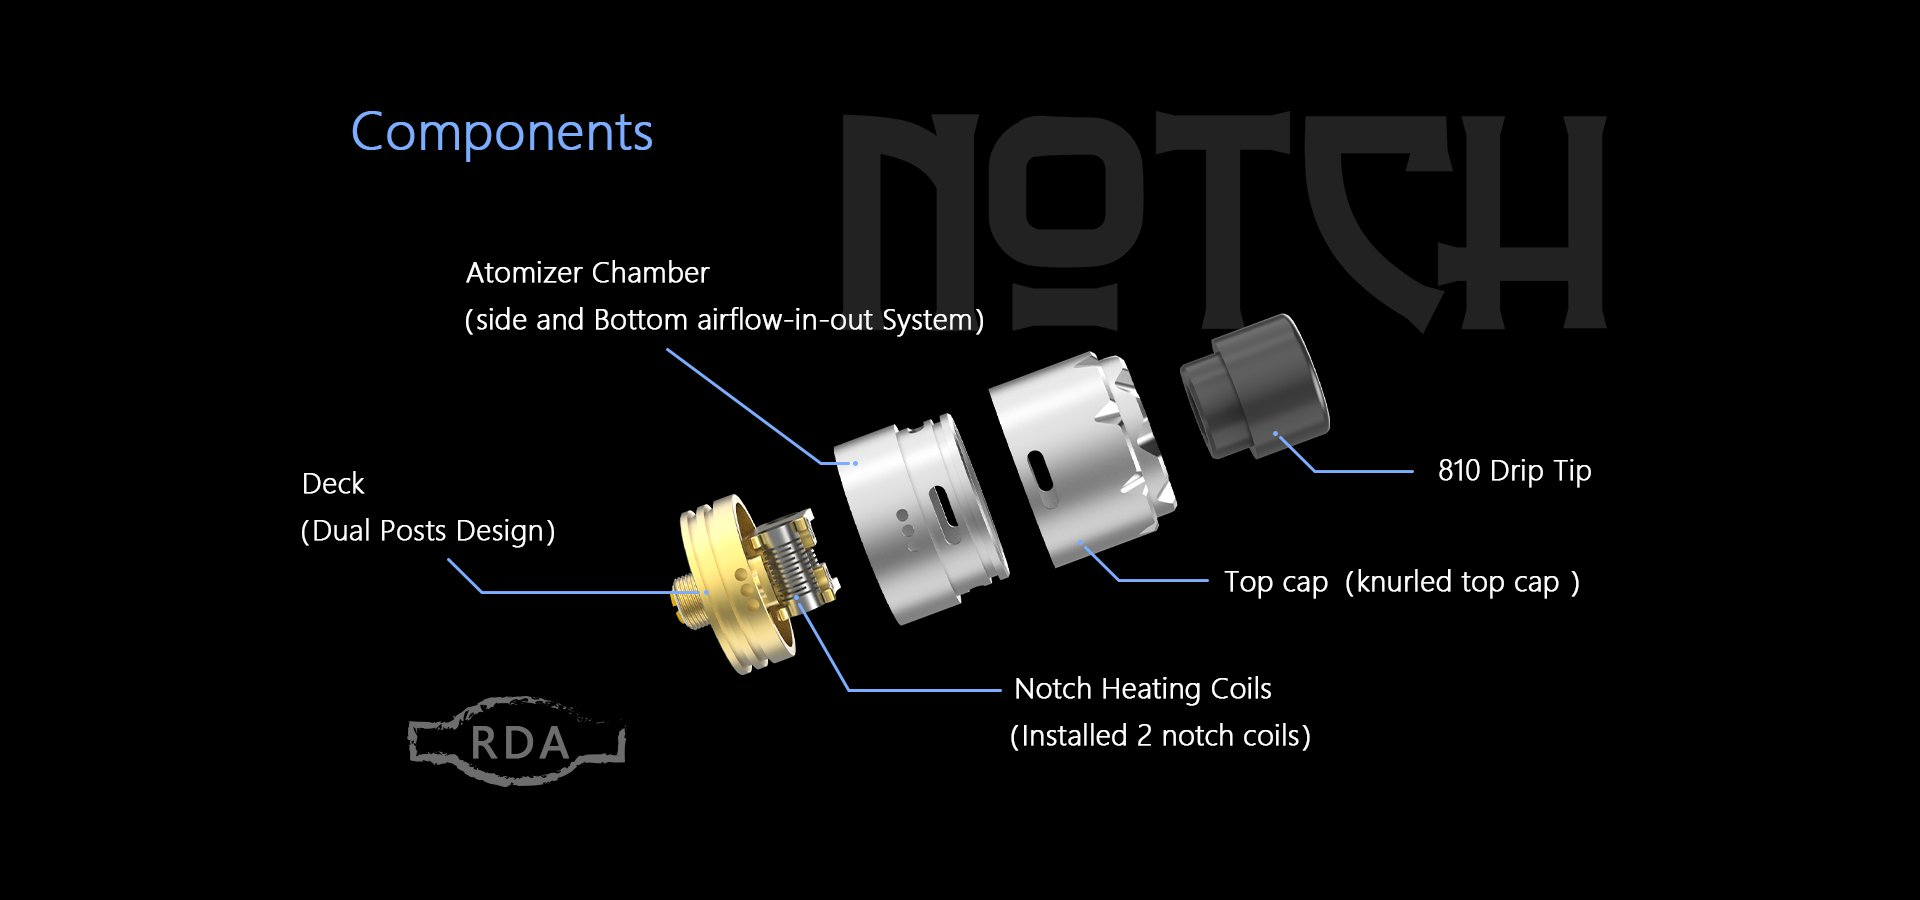 Advken Notch RDA Components